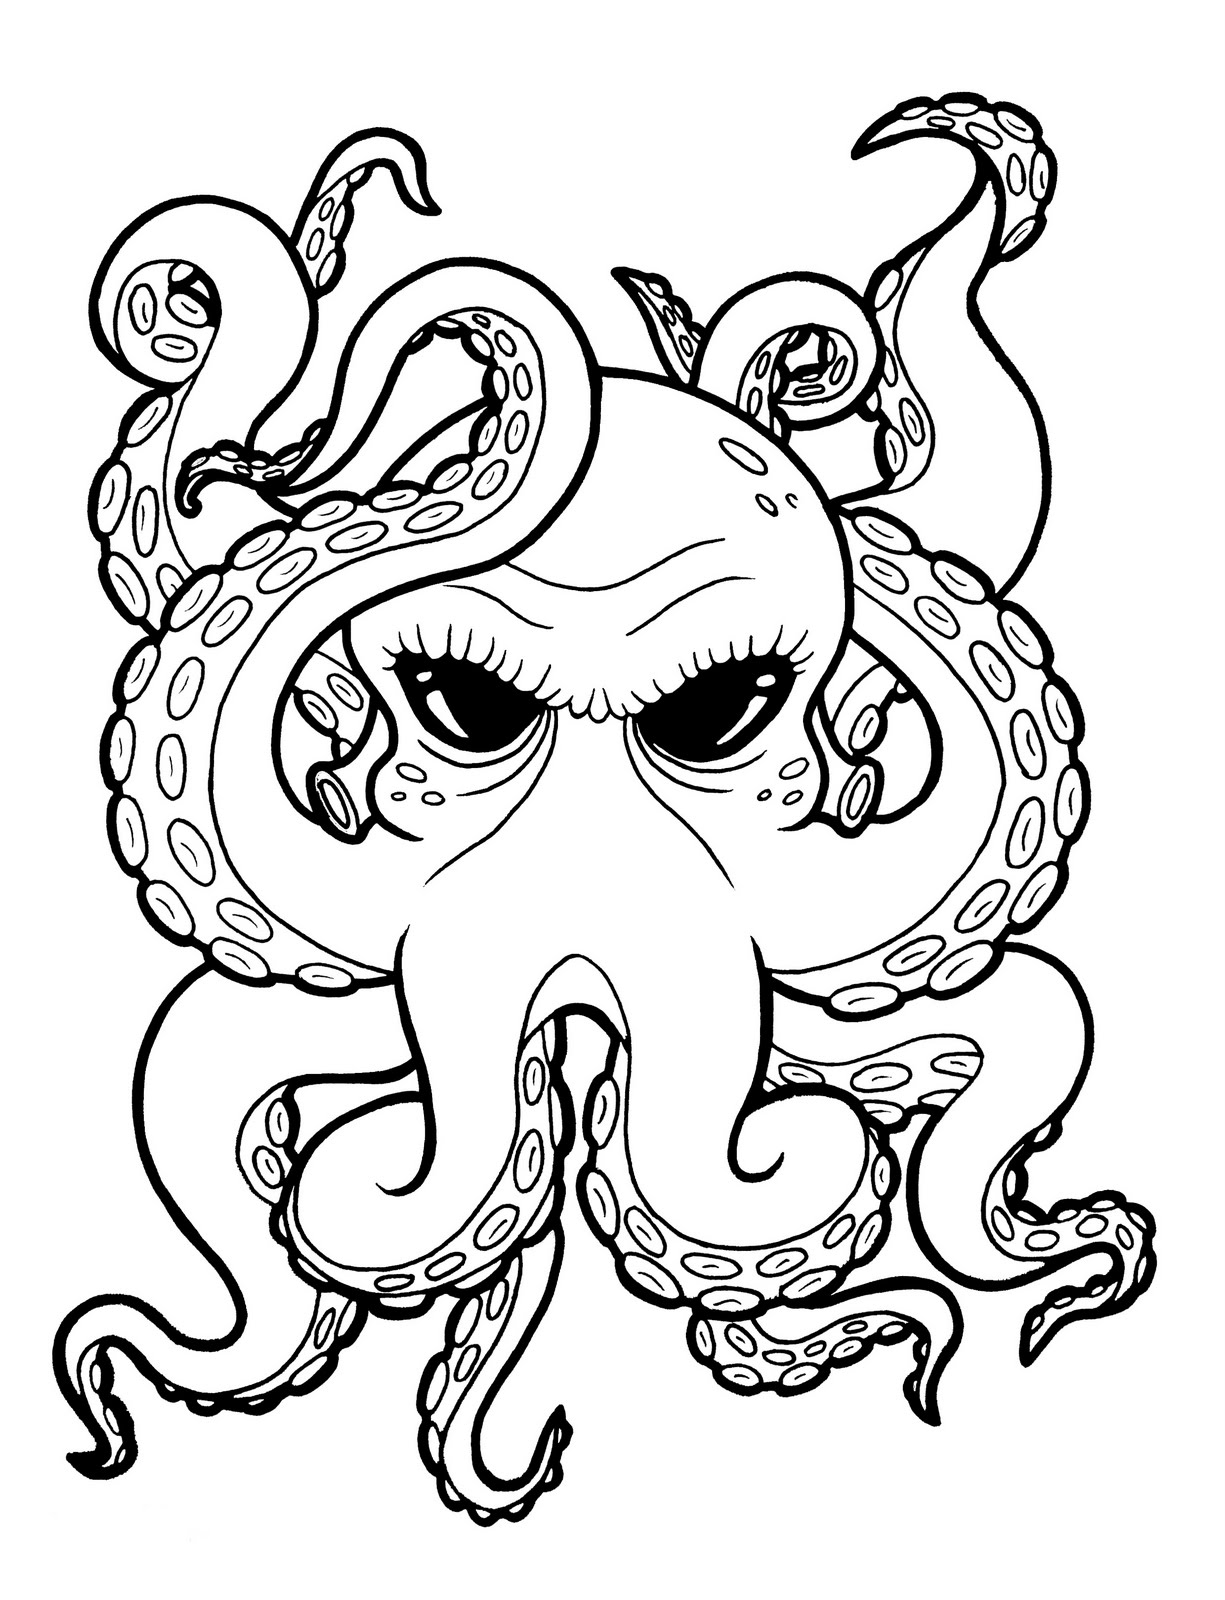 octupus drawing octopus line drawing free download on clipartmag drawing octupus